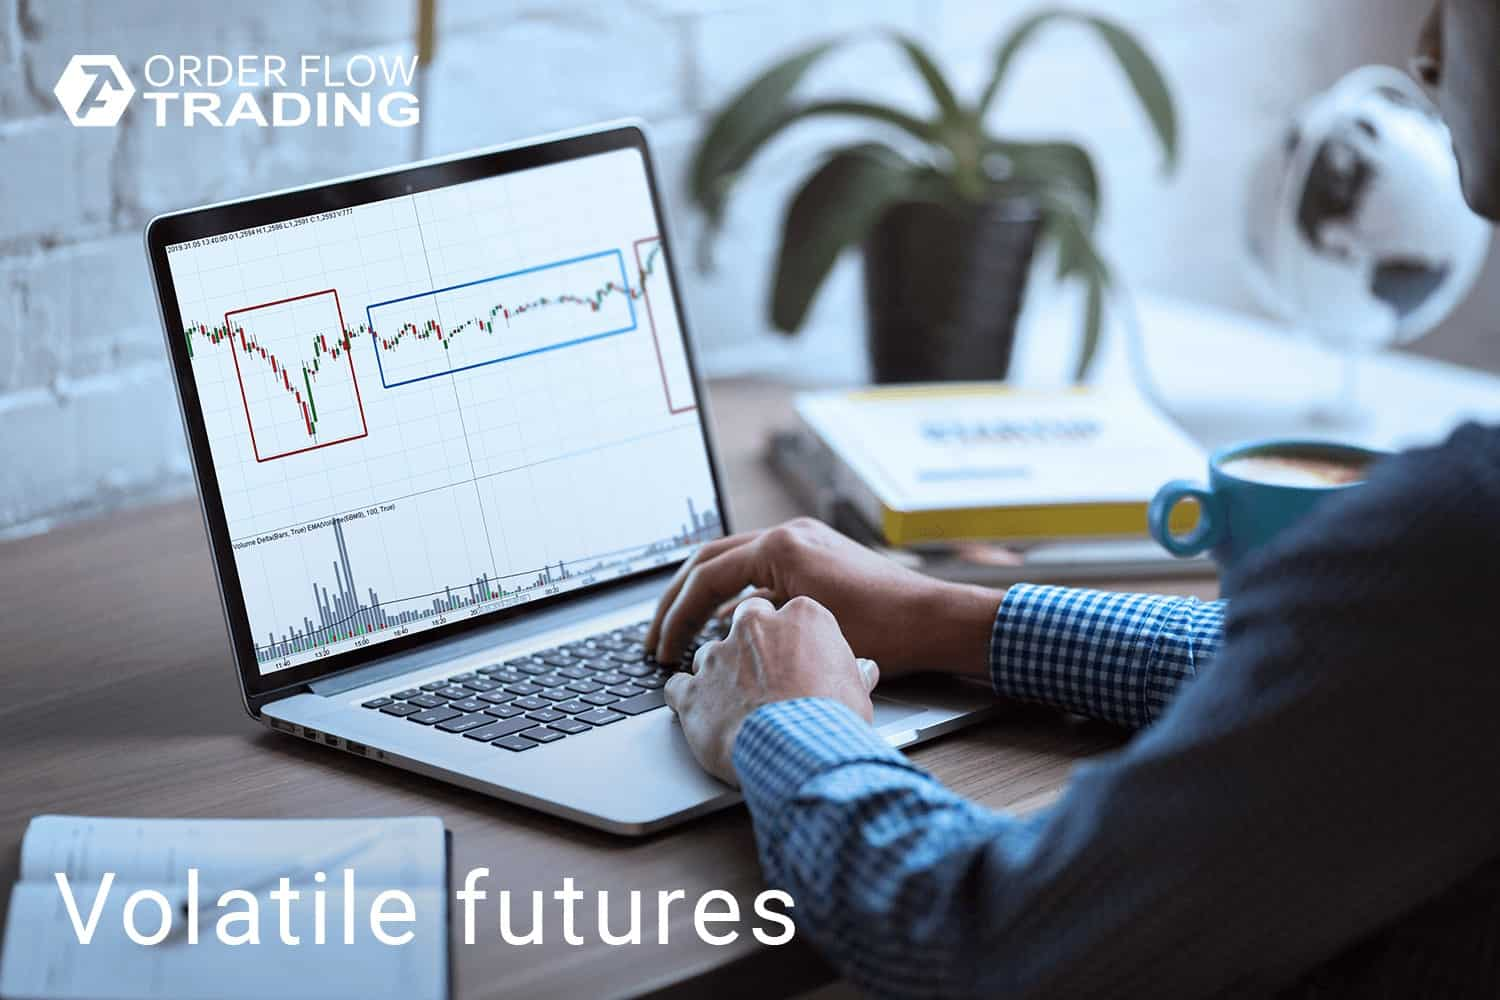 Volatile futures. What is it and how to make money from it?